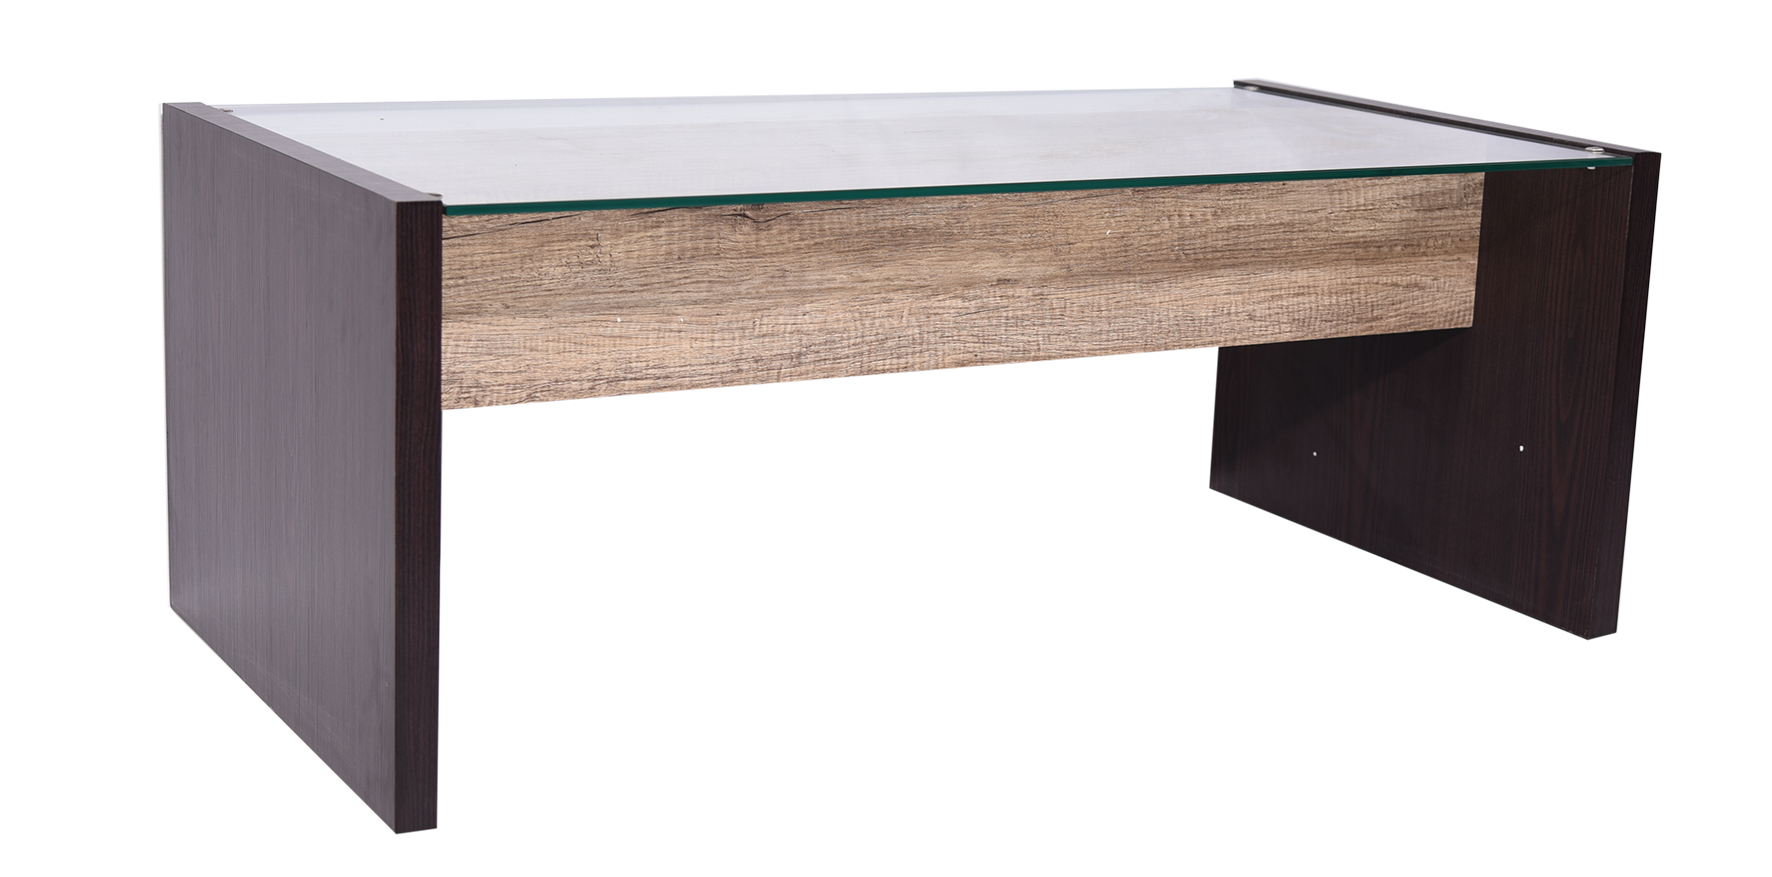 Tables contempo coffee table for sale in johannesburg for Coffee tables jhb